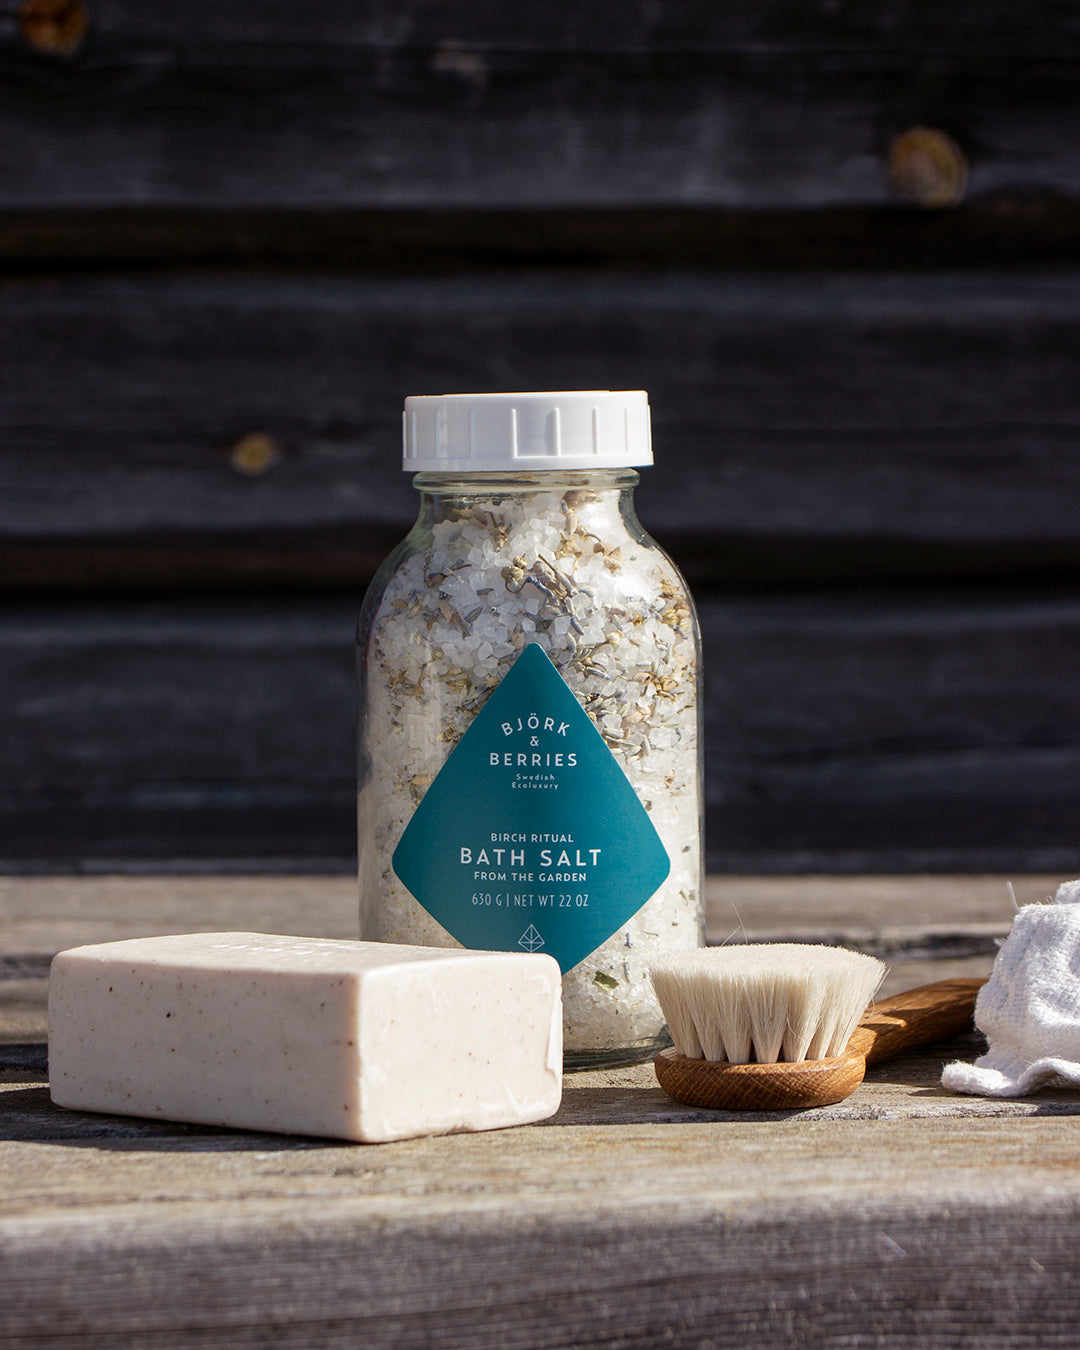 Soak in our Bath Salt from the garden